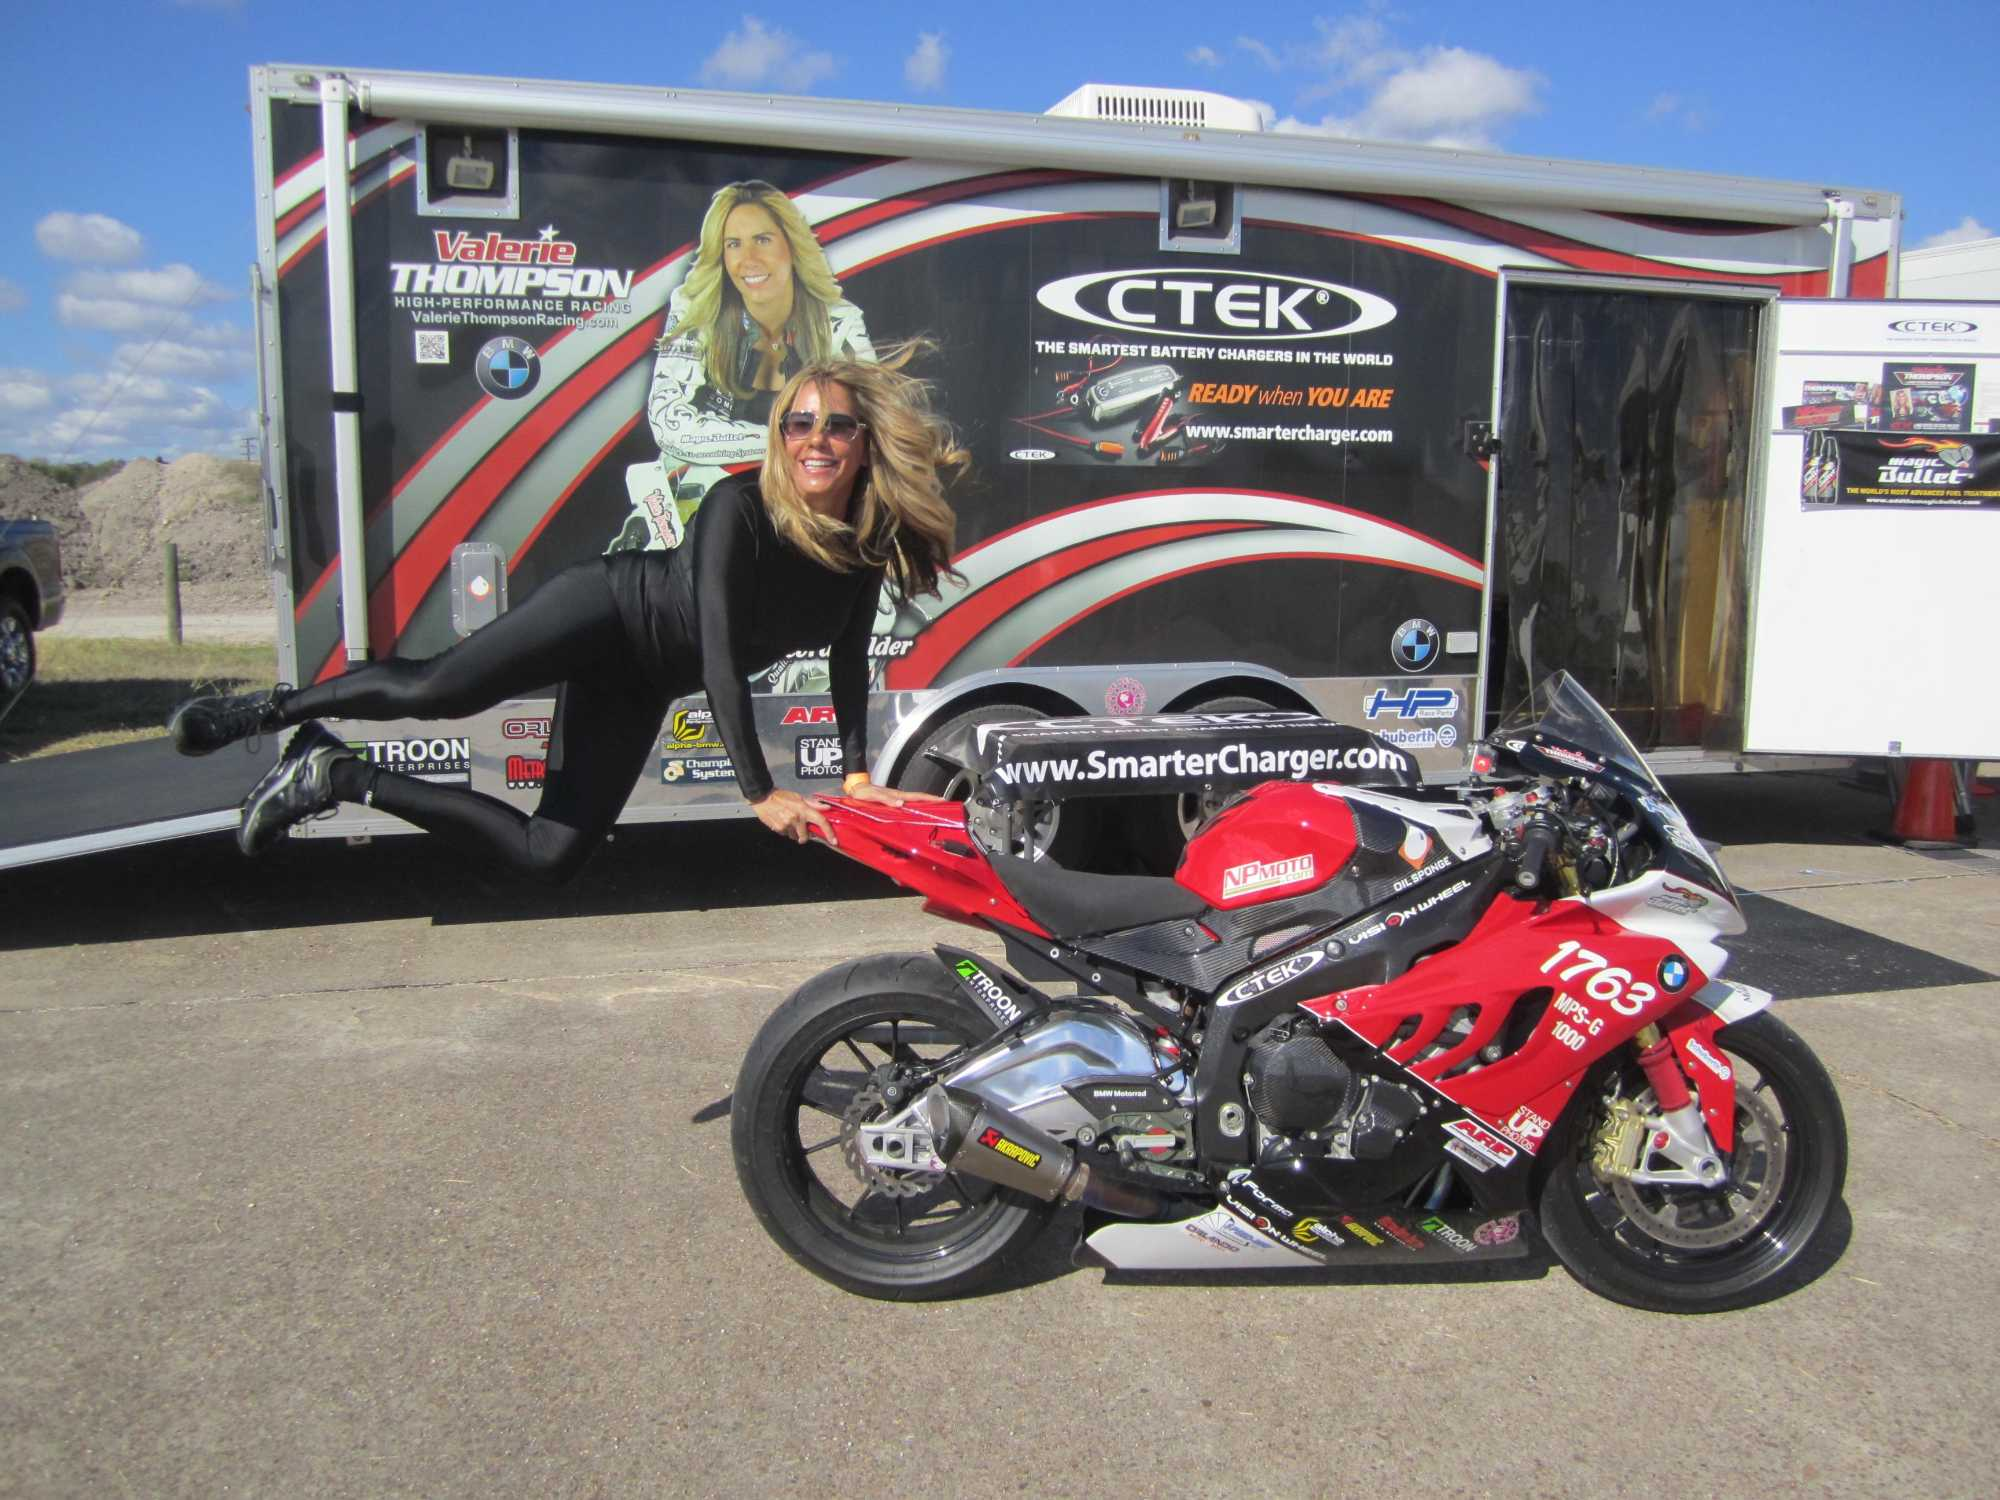 Valerie Thompson Pilots Bmw S 1000 Rr To New Personal Best Top Speed With 217 Mph Run At Texas Mile Speed Festival